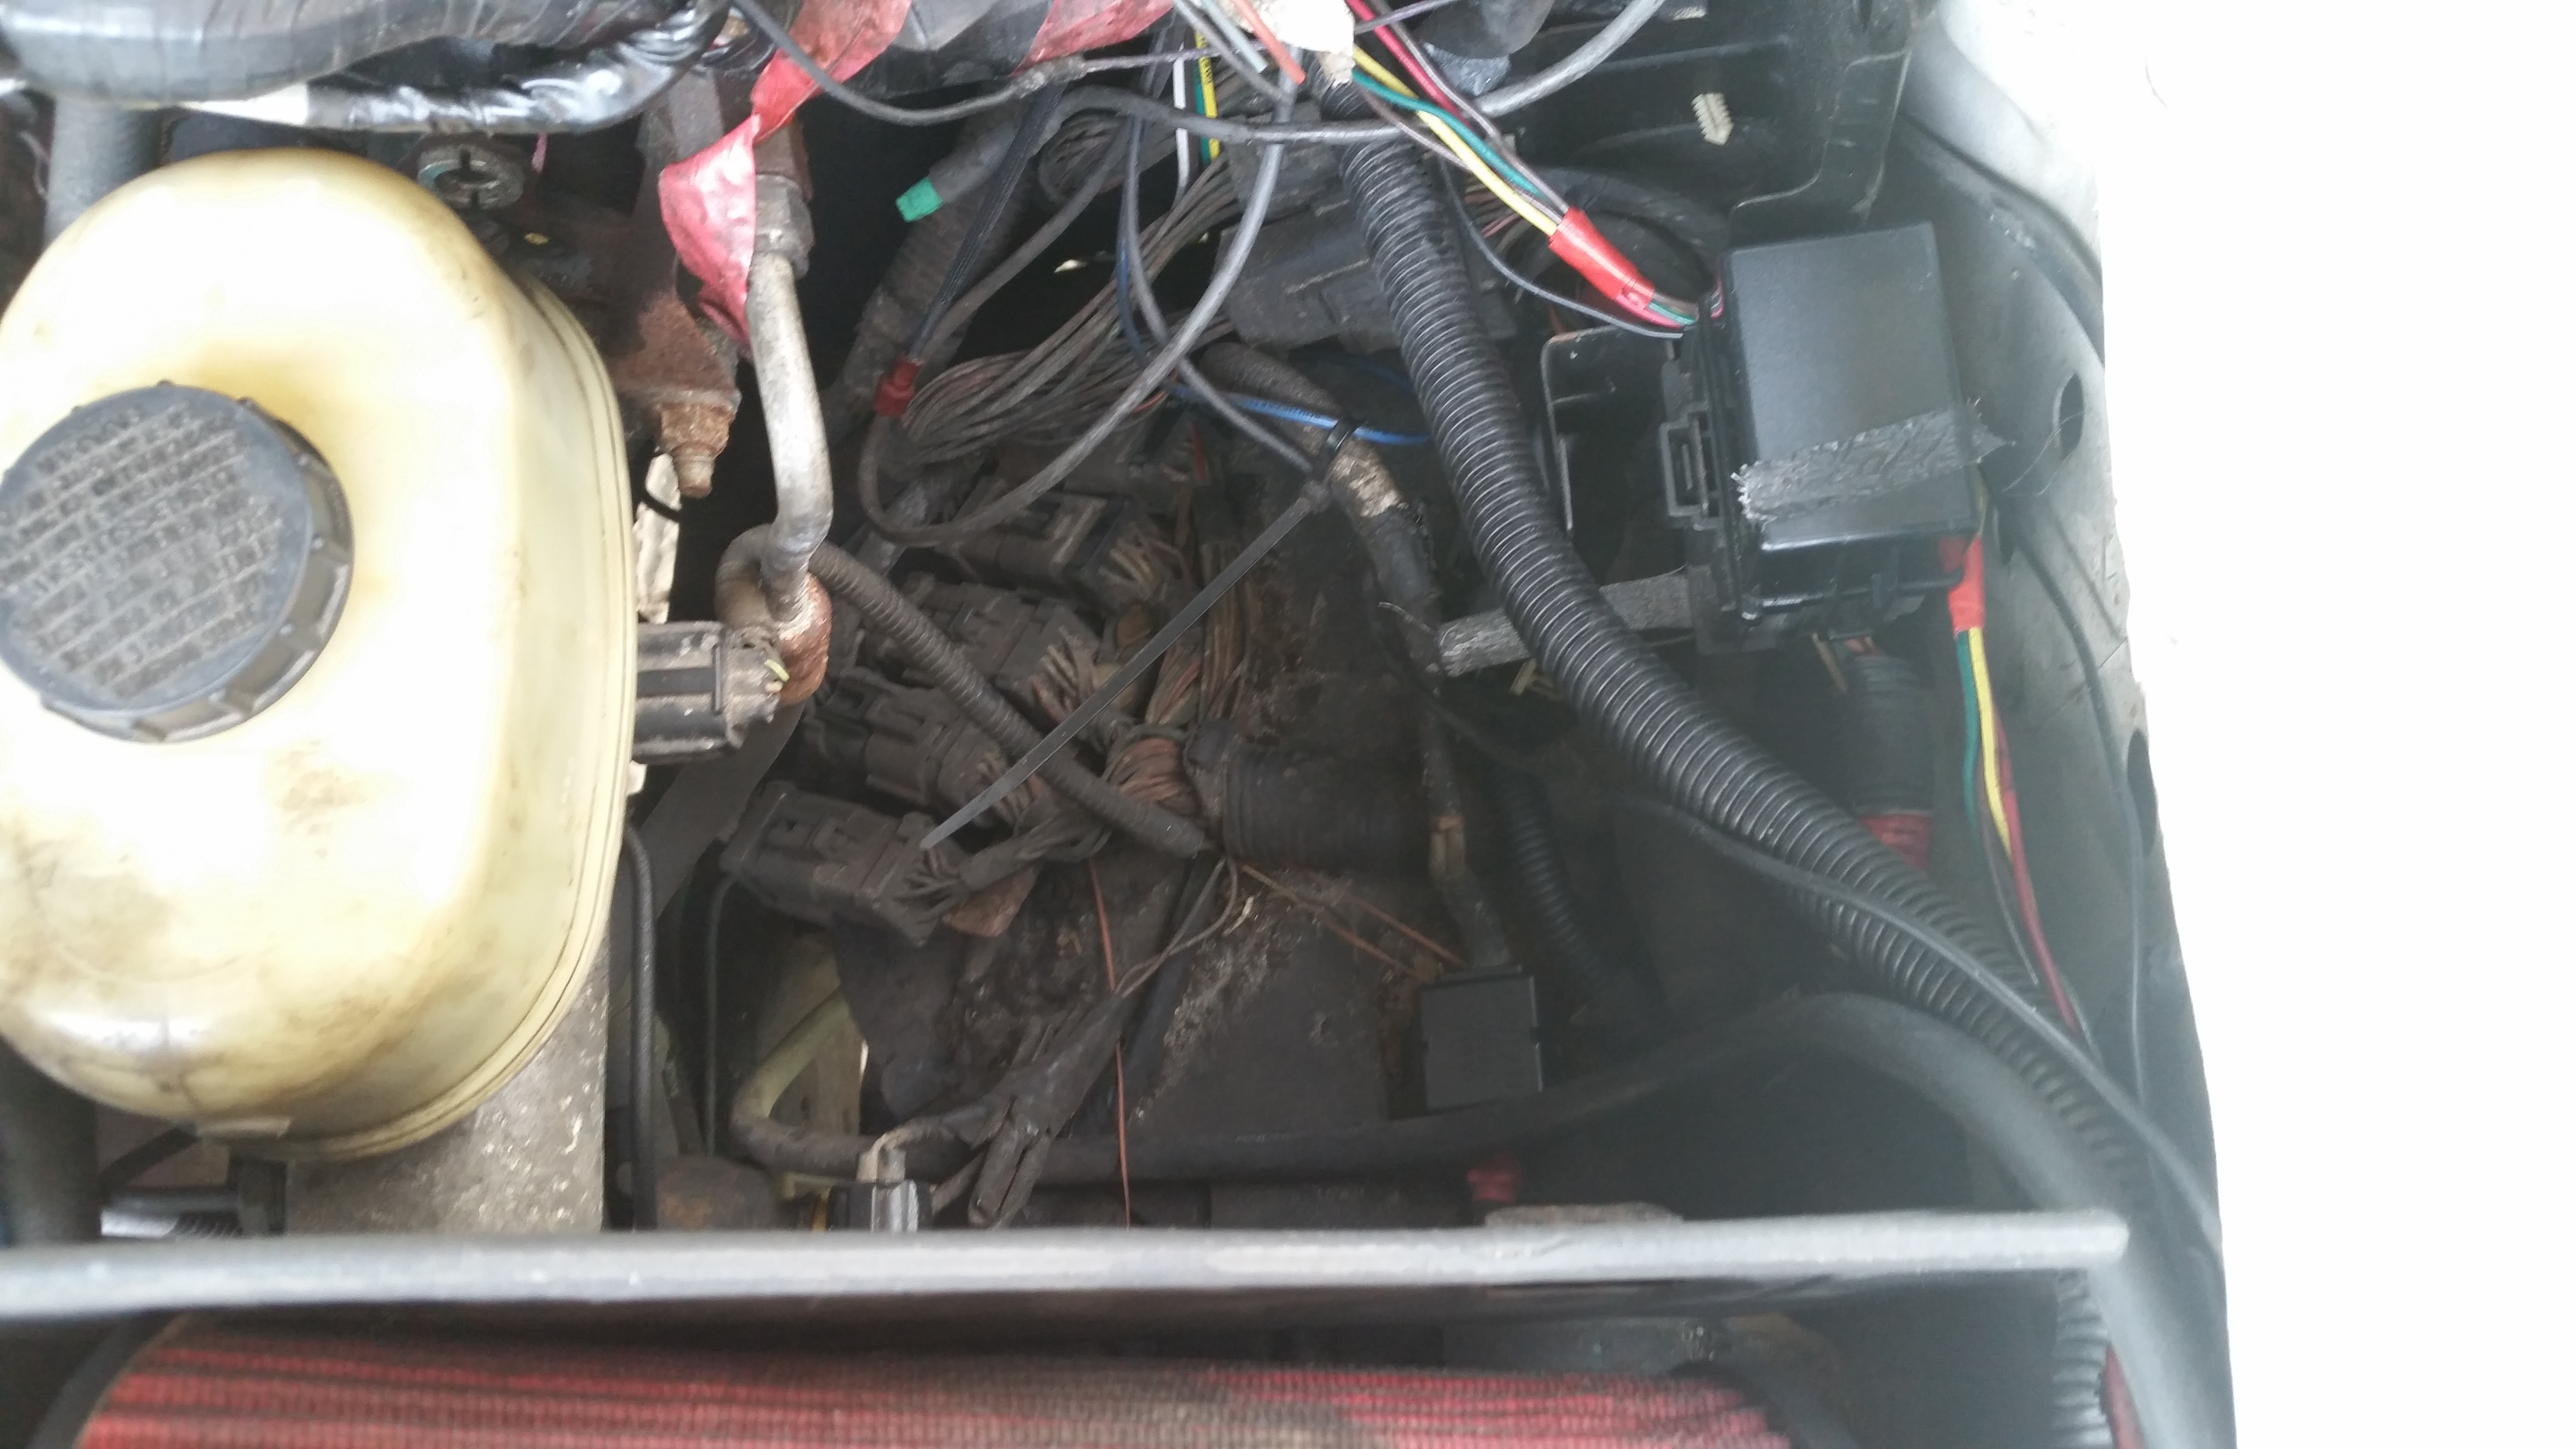 564809d1474214476 2002 sd under hood fuse location 20160918_114621 2002 sd under hood fuse location? ford powerstroke diesel forum  at panicattacktreatment.co